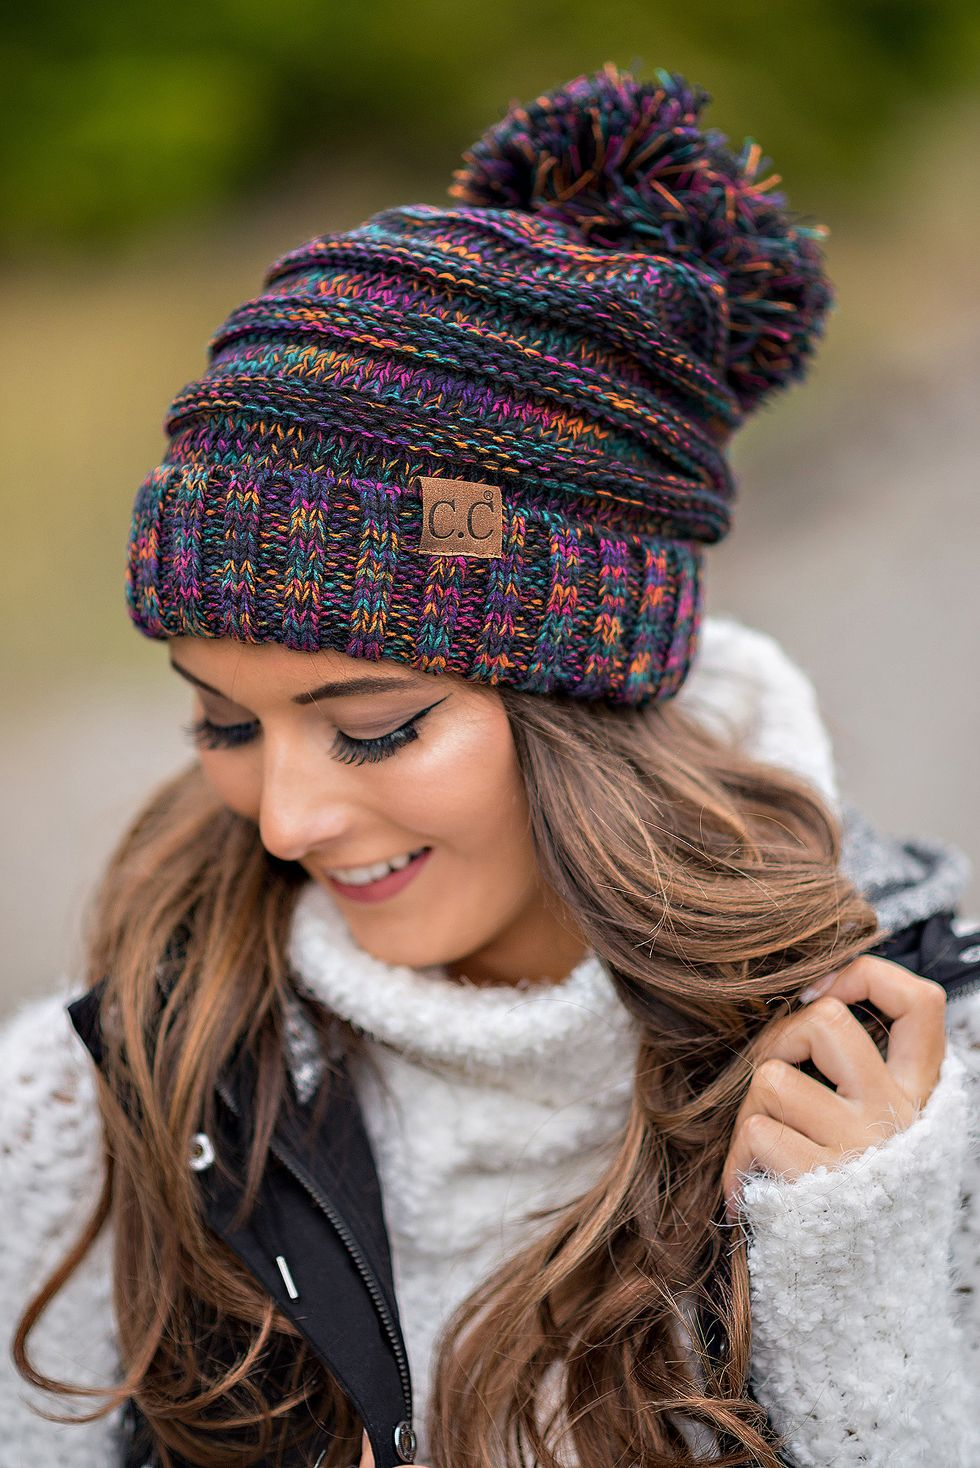 Fashionable women hats for winter and snow outfits 23